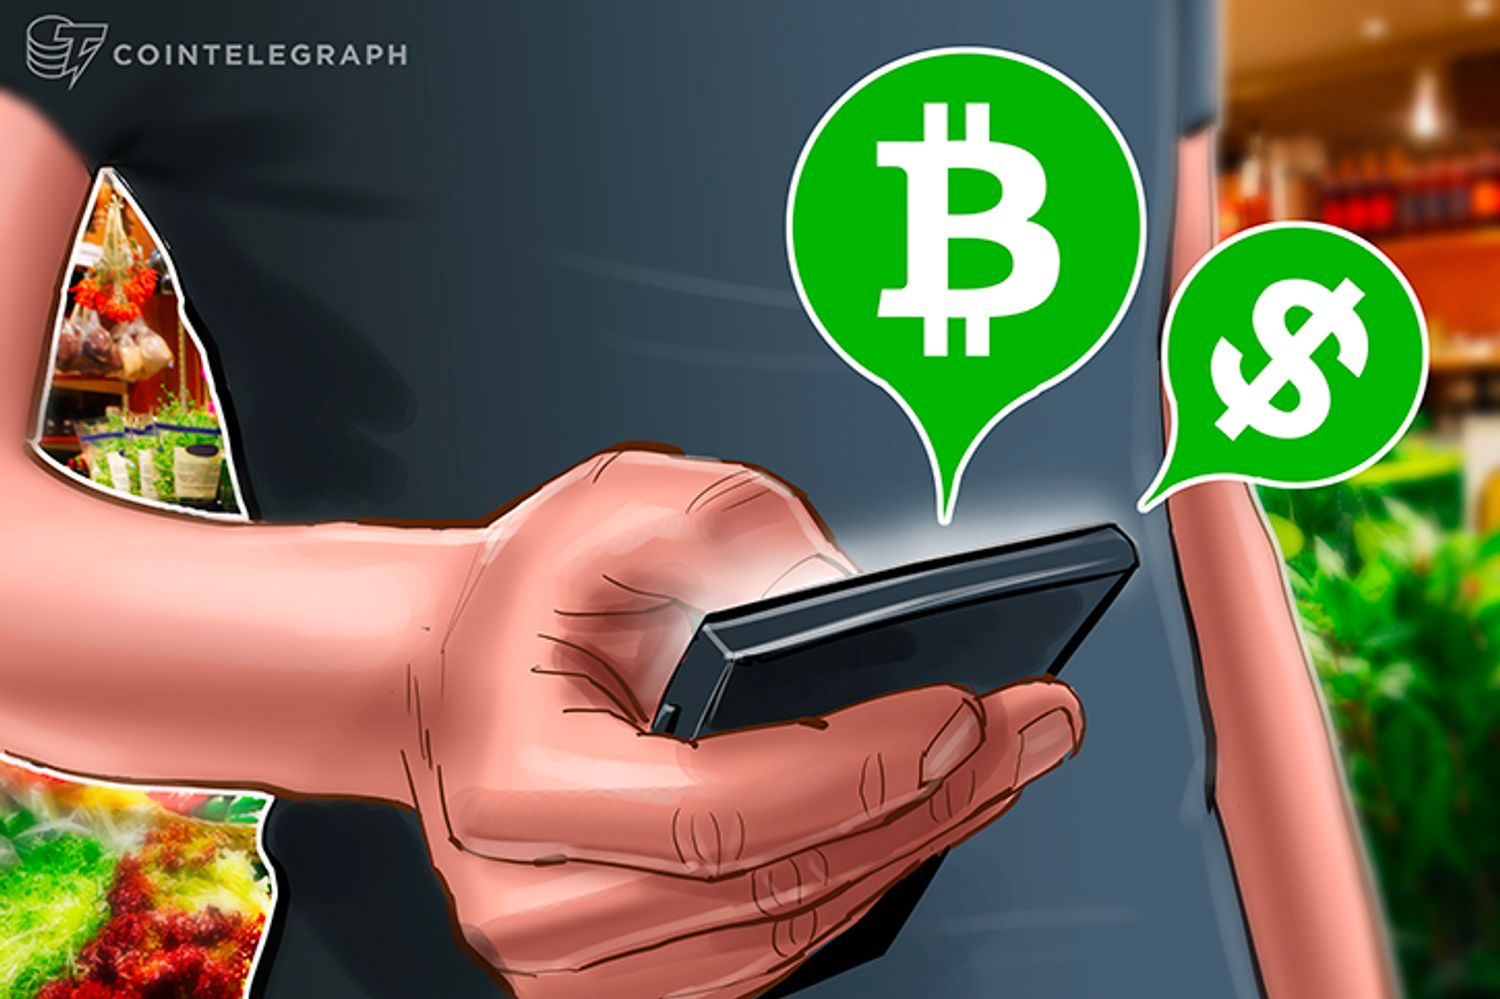 Square cash app releases bitcoin buysell option to almost all users ccuart Choice Image